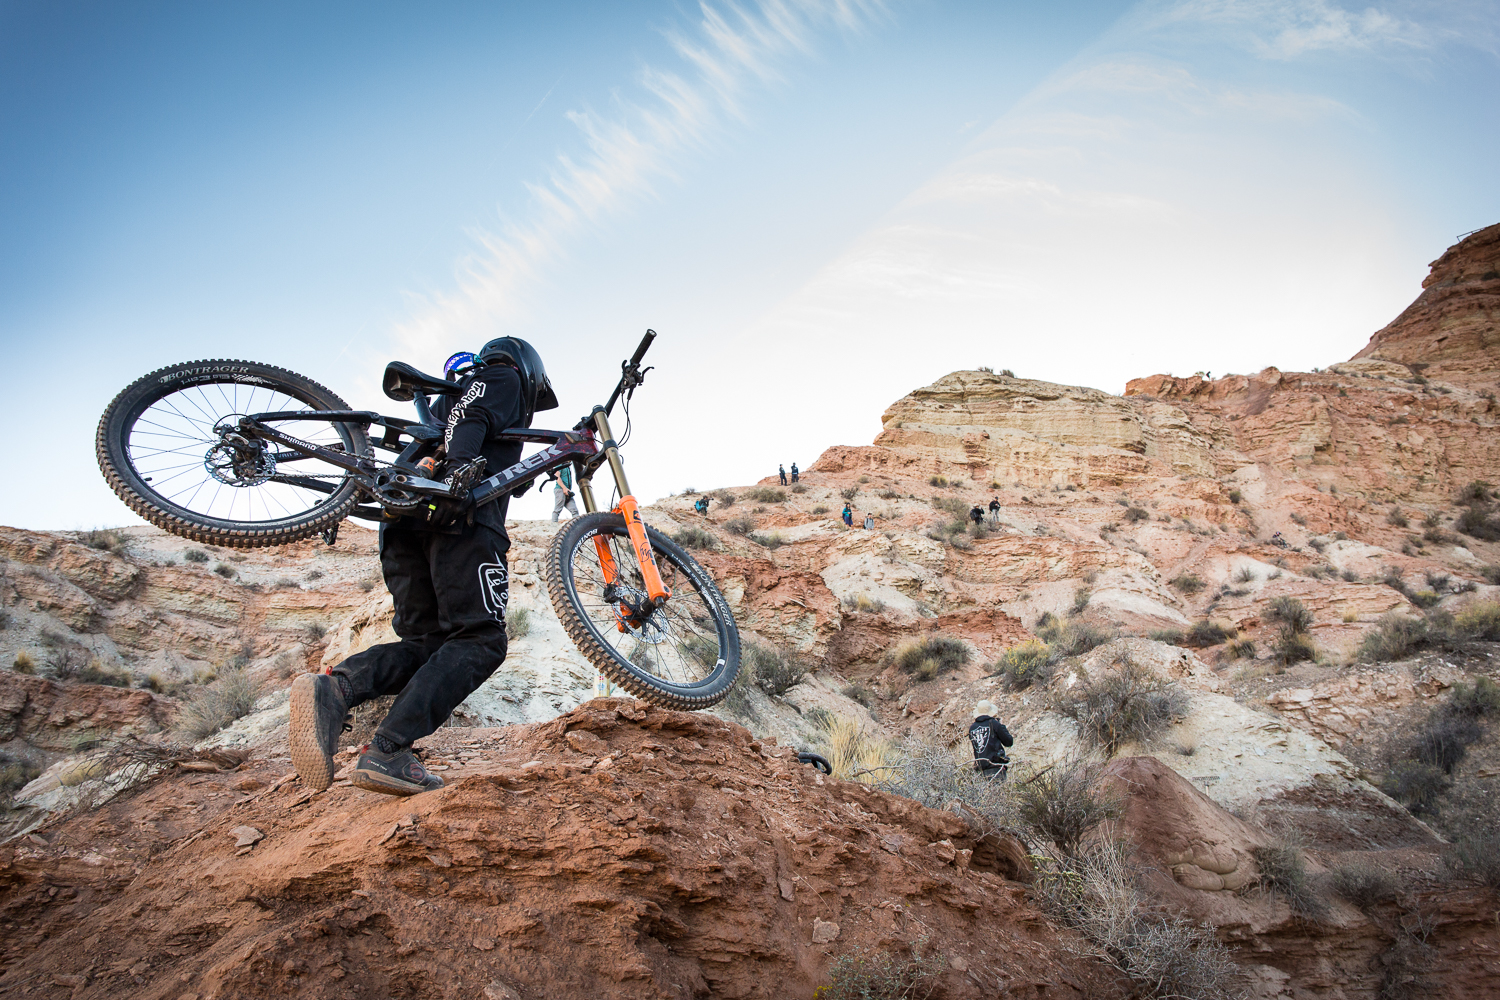 Tom Van Steenbergen hiking to the top of his line on the first practice day